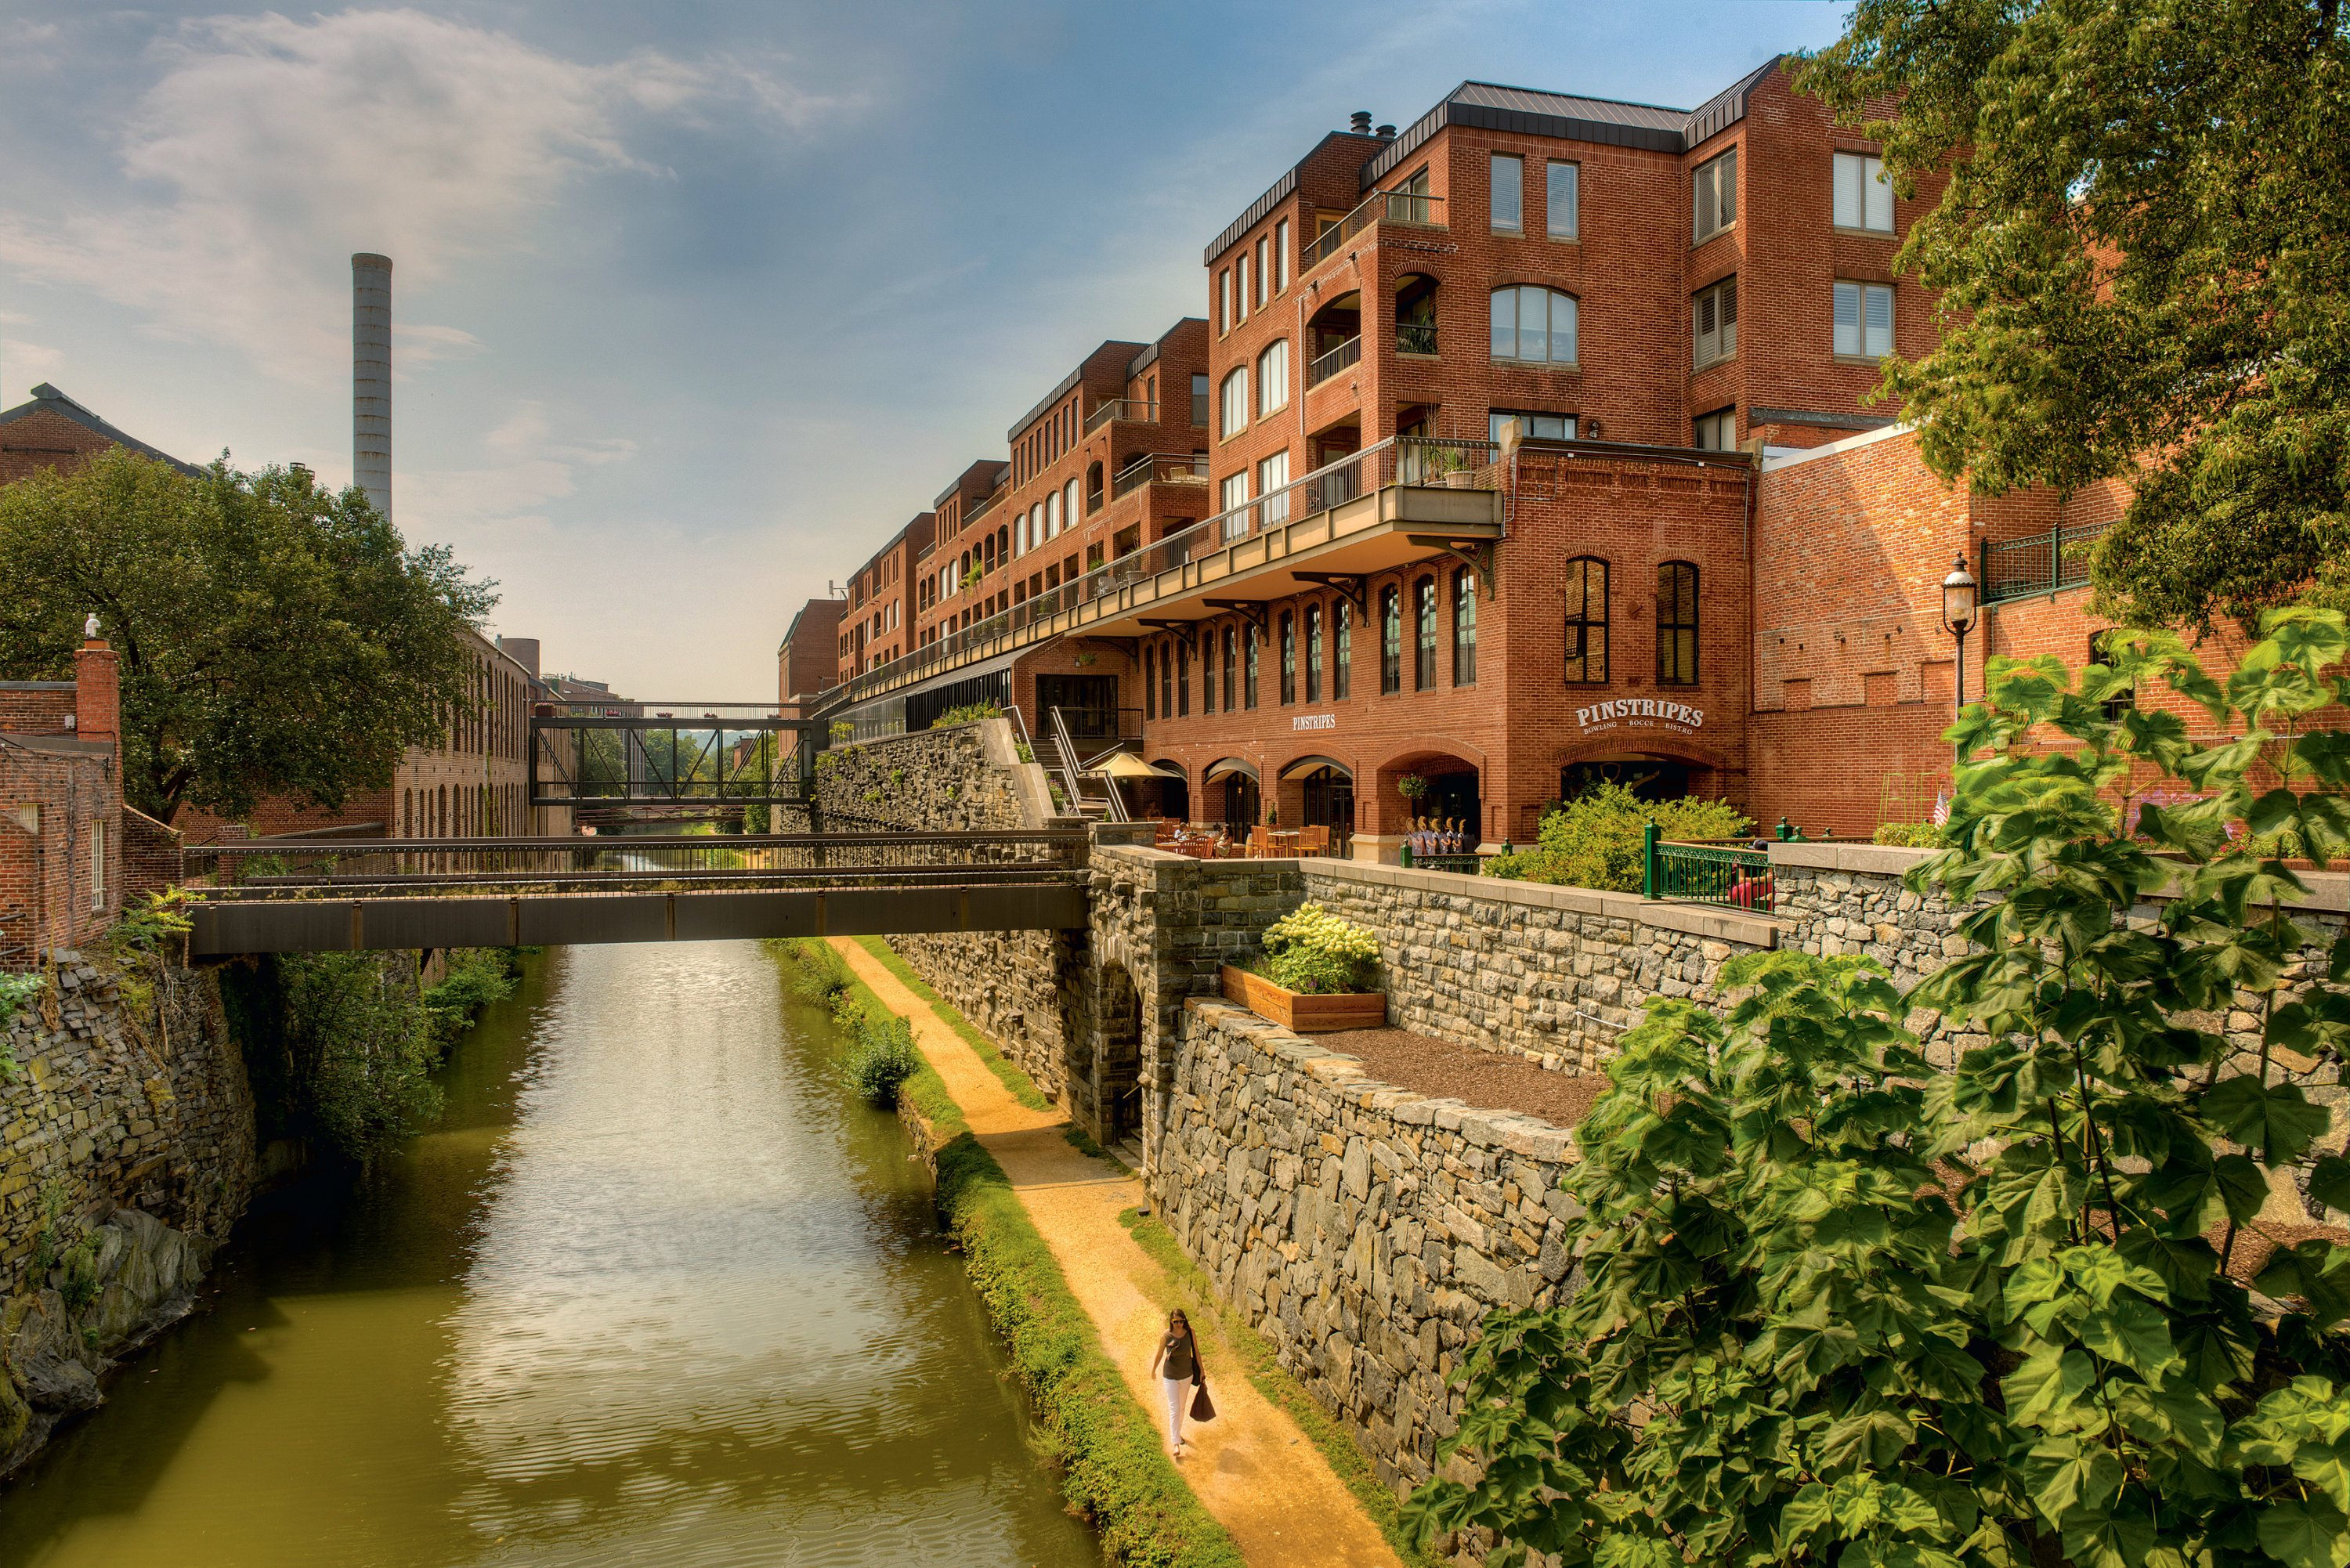 Should We Revamp the C&O Canal in Georgetown?